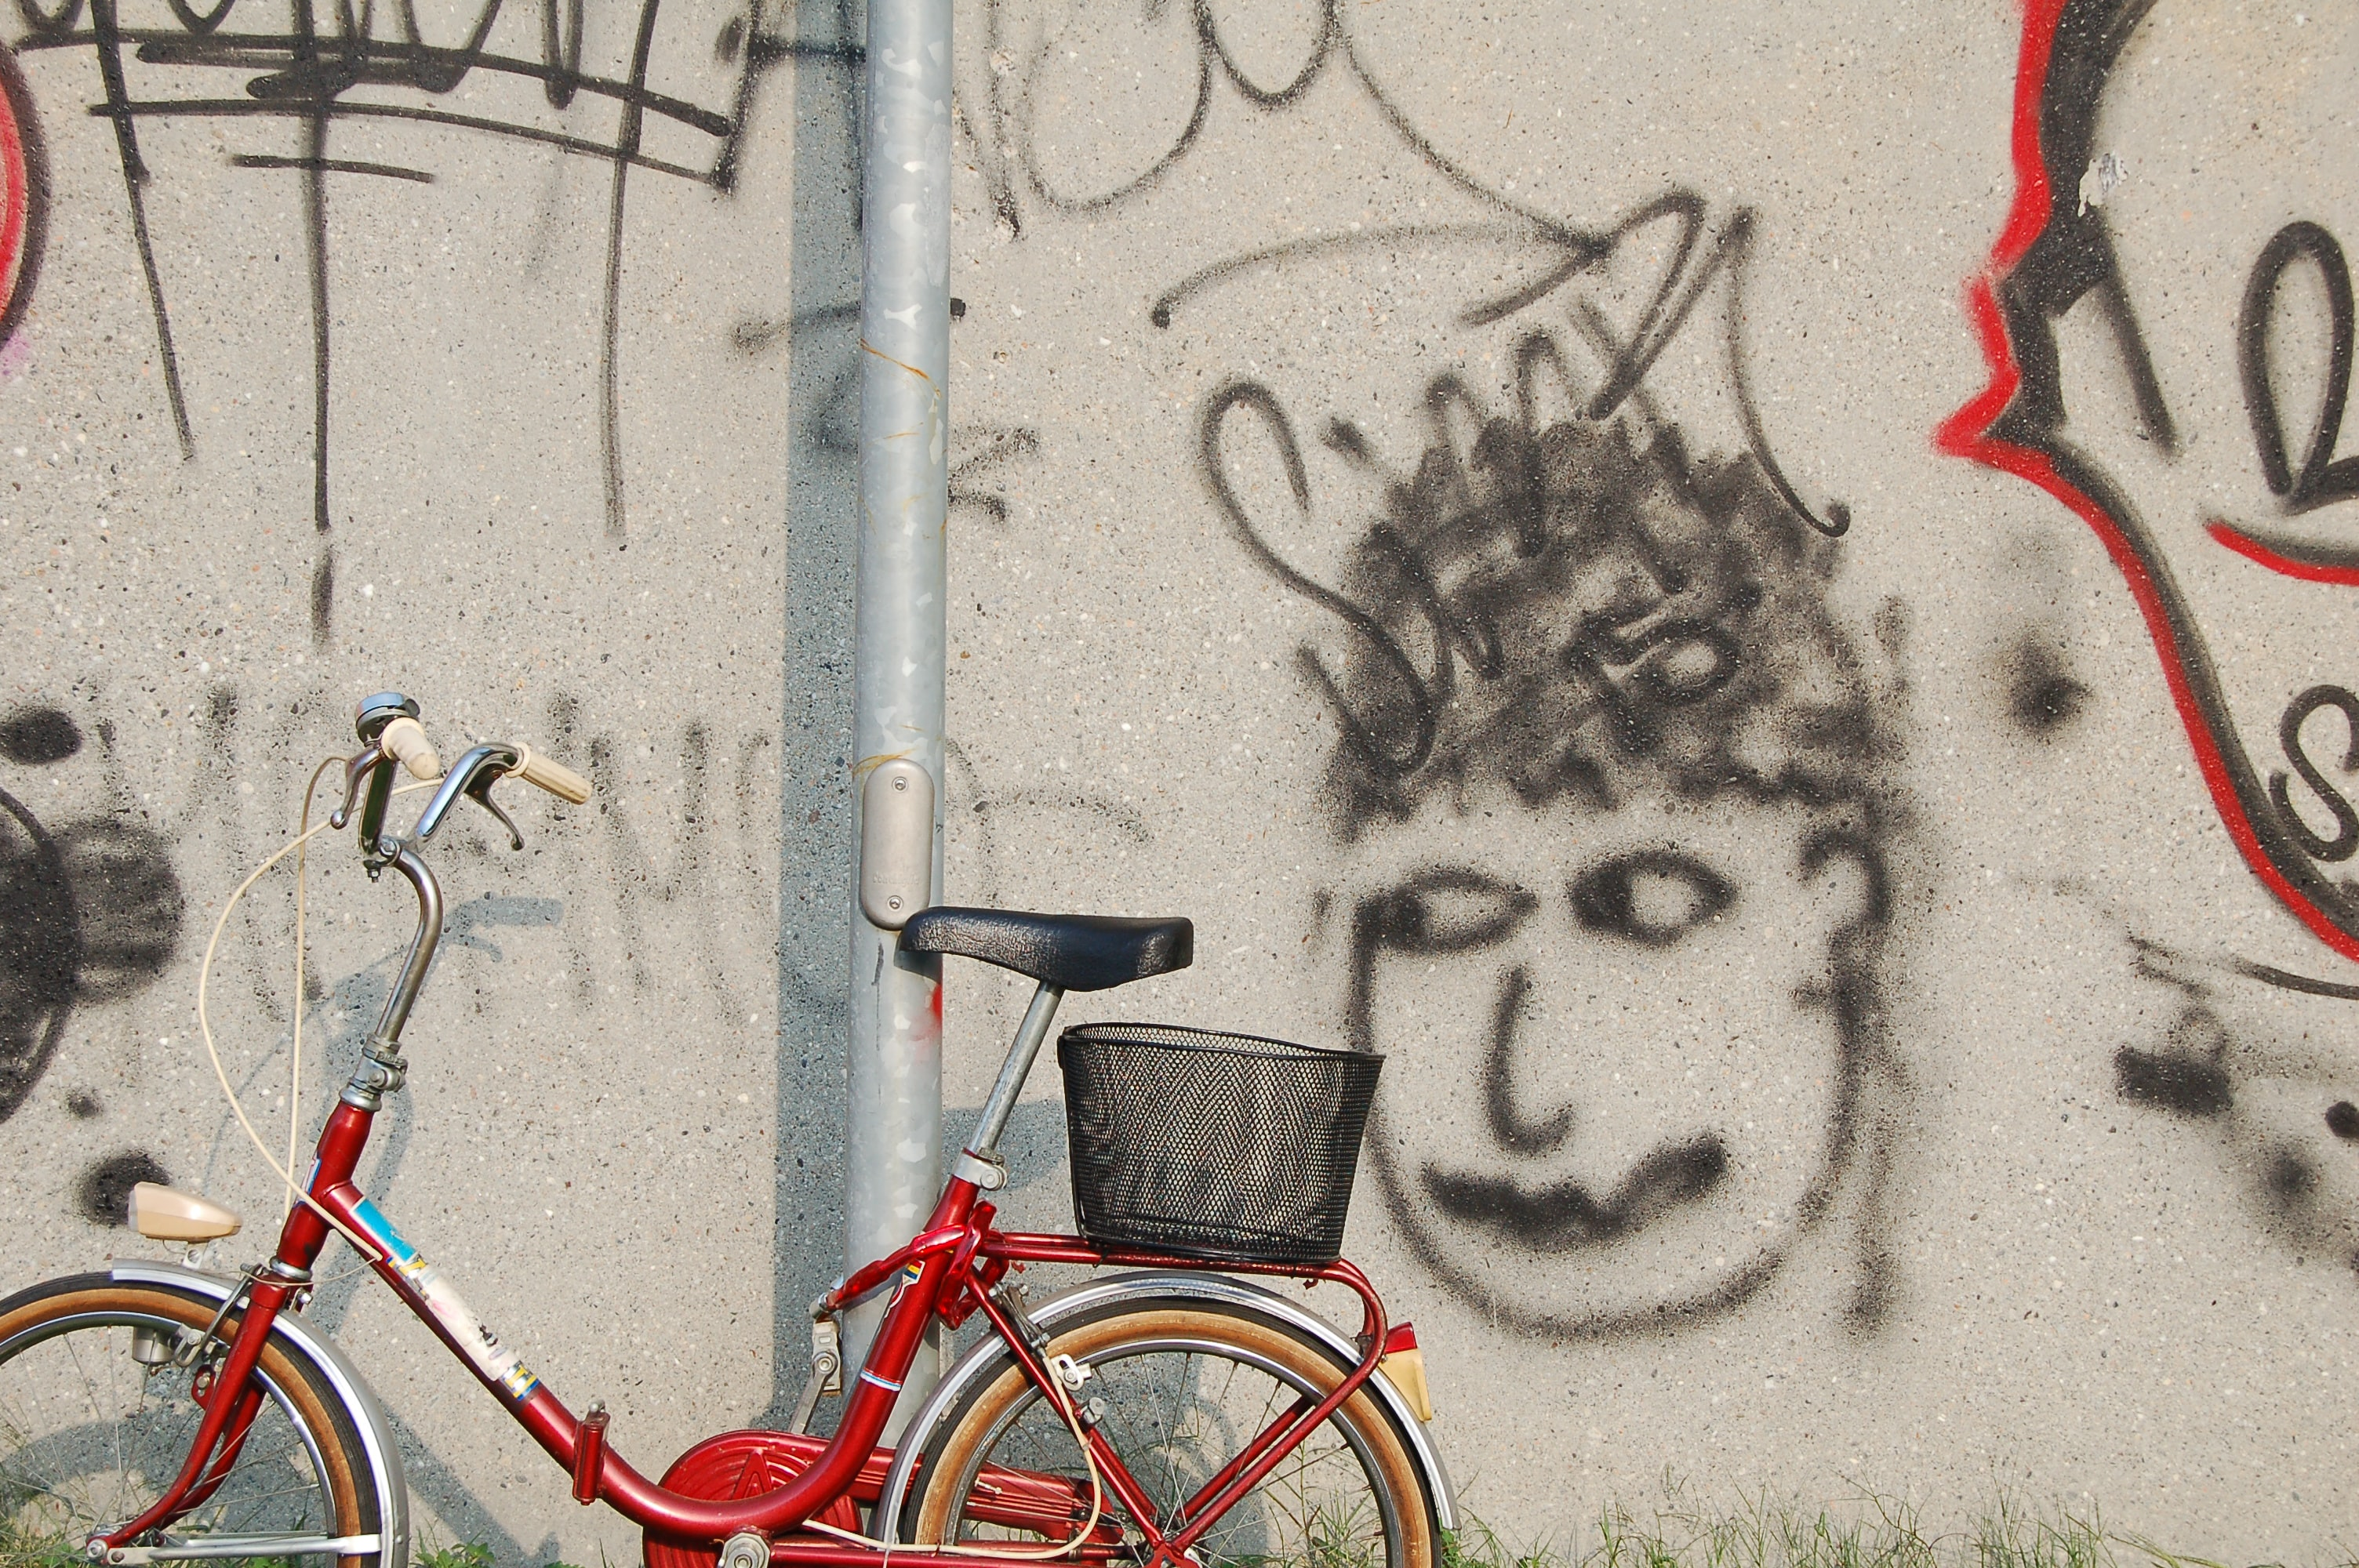 Red bicycle with basket in front of wall with graffiti